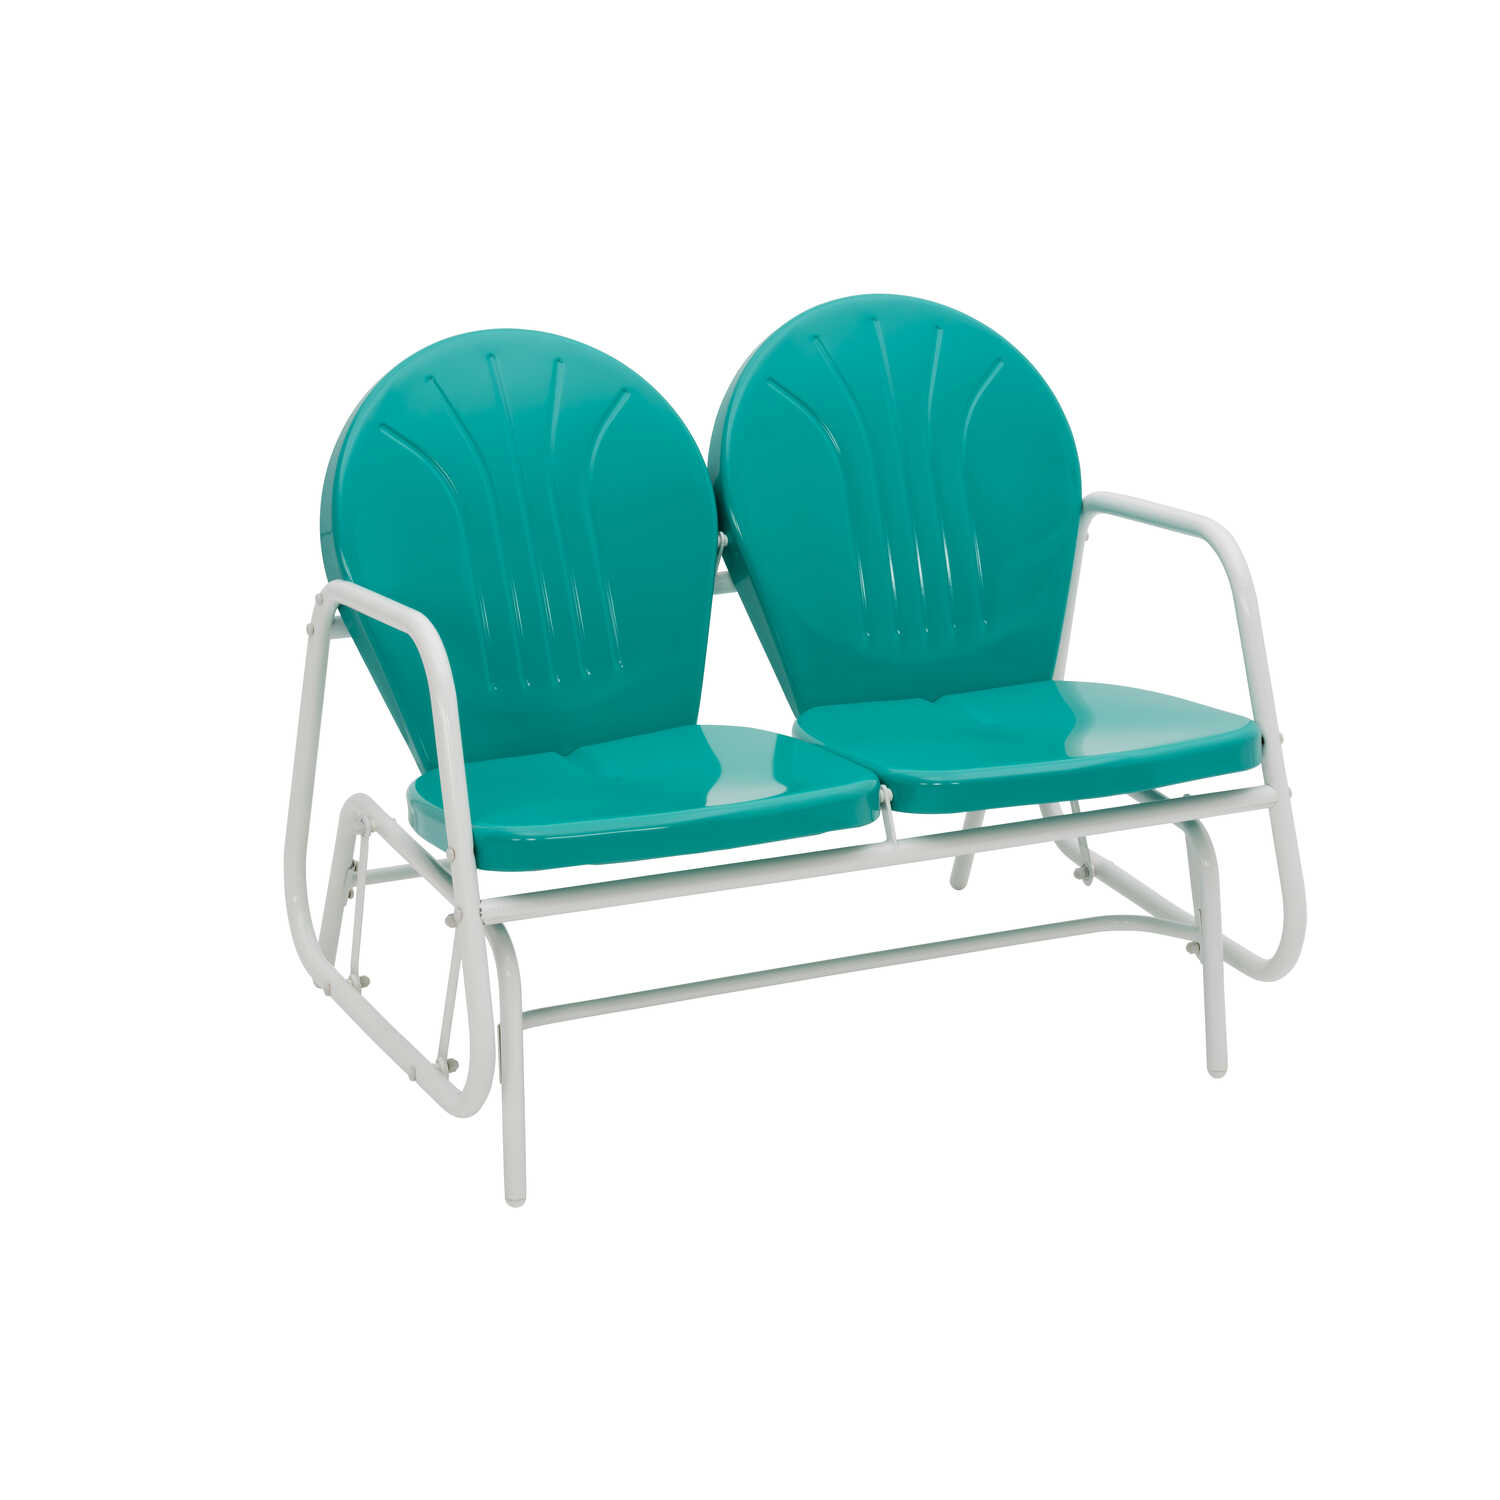 Jack Post  Turquoise  Steel  Glider  Chair